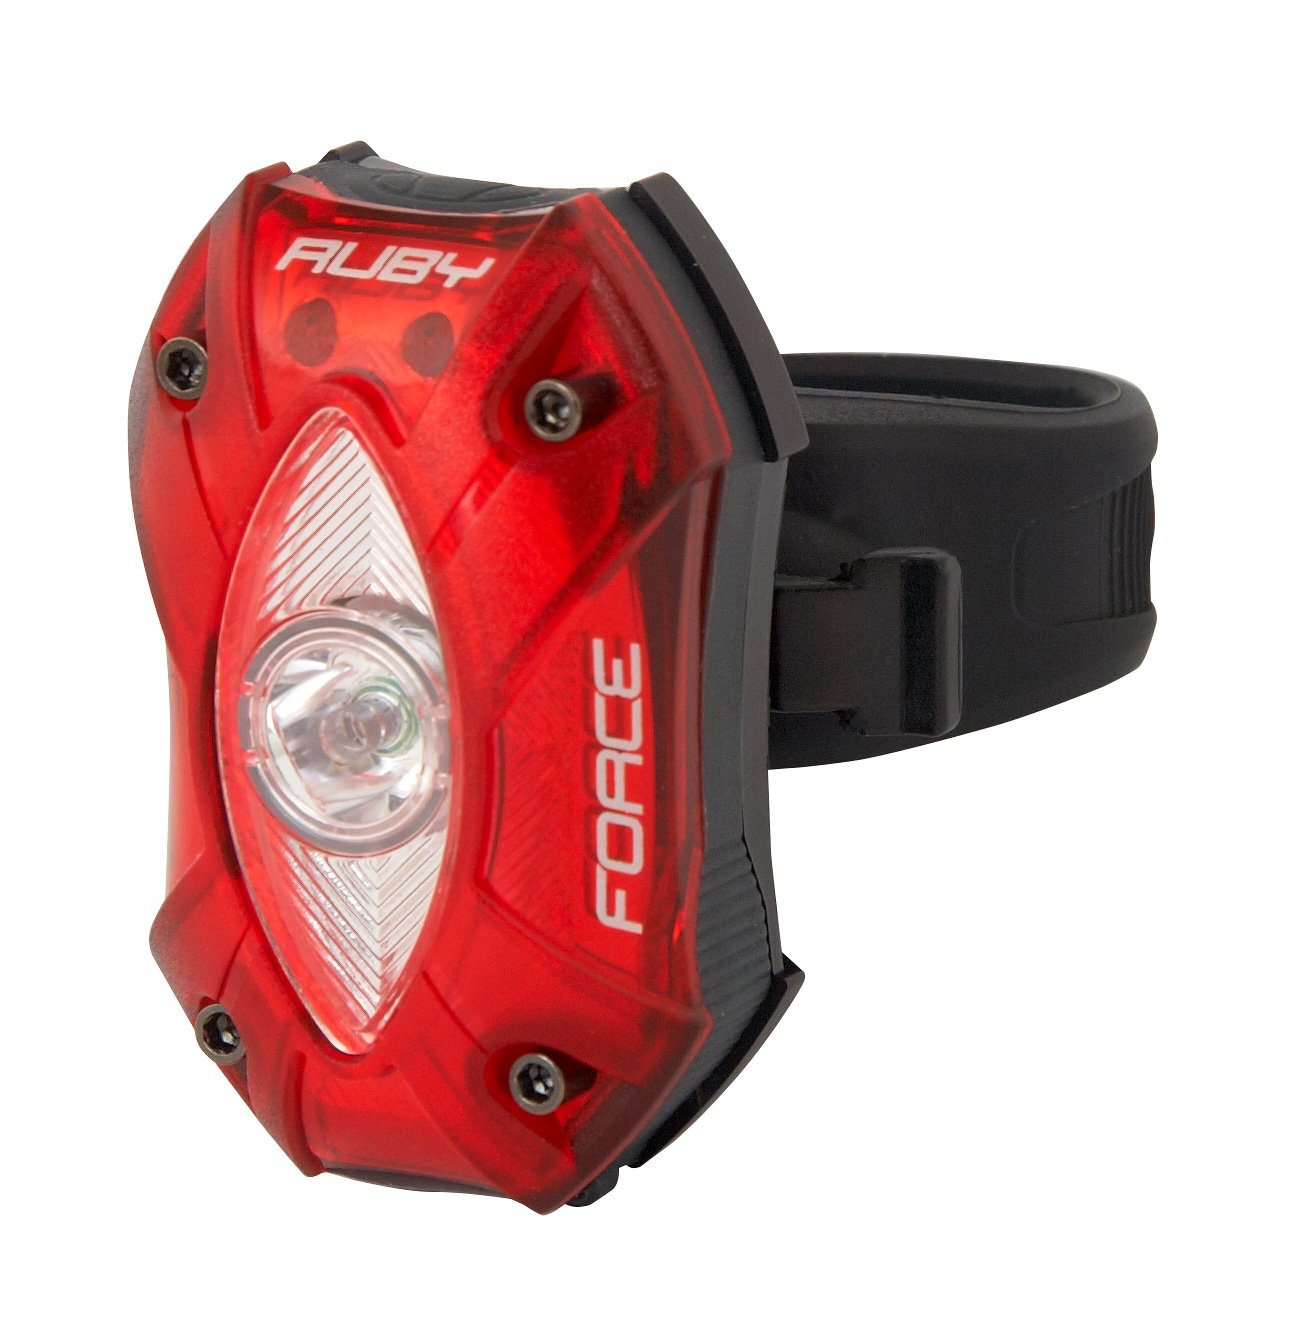 Force led baglygte USB | Computer Battery and Charger